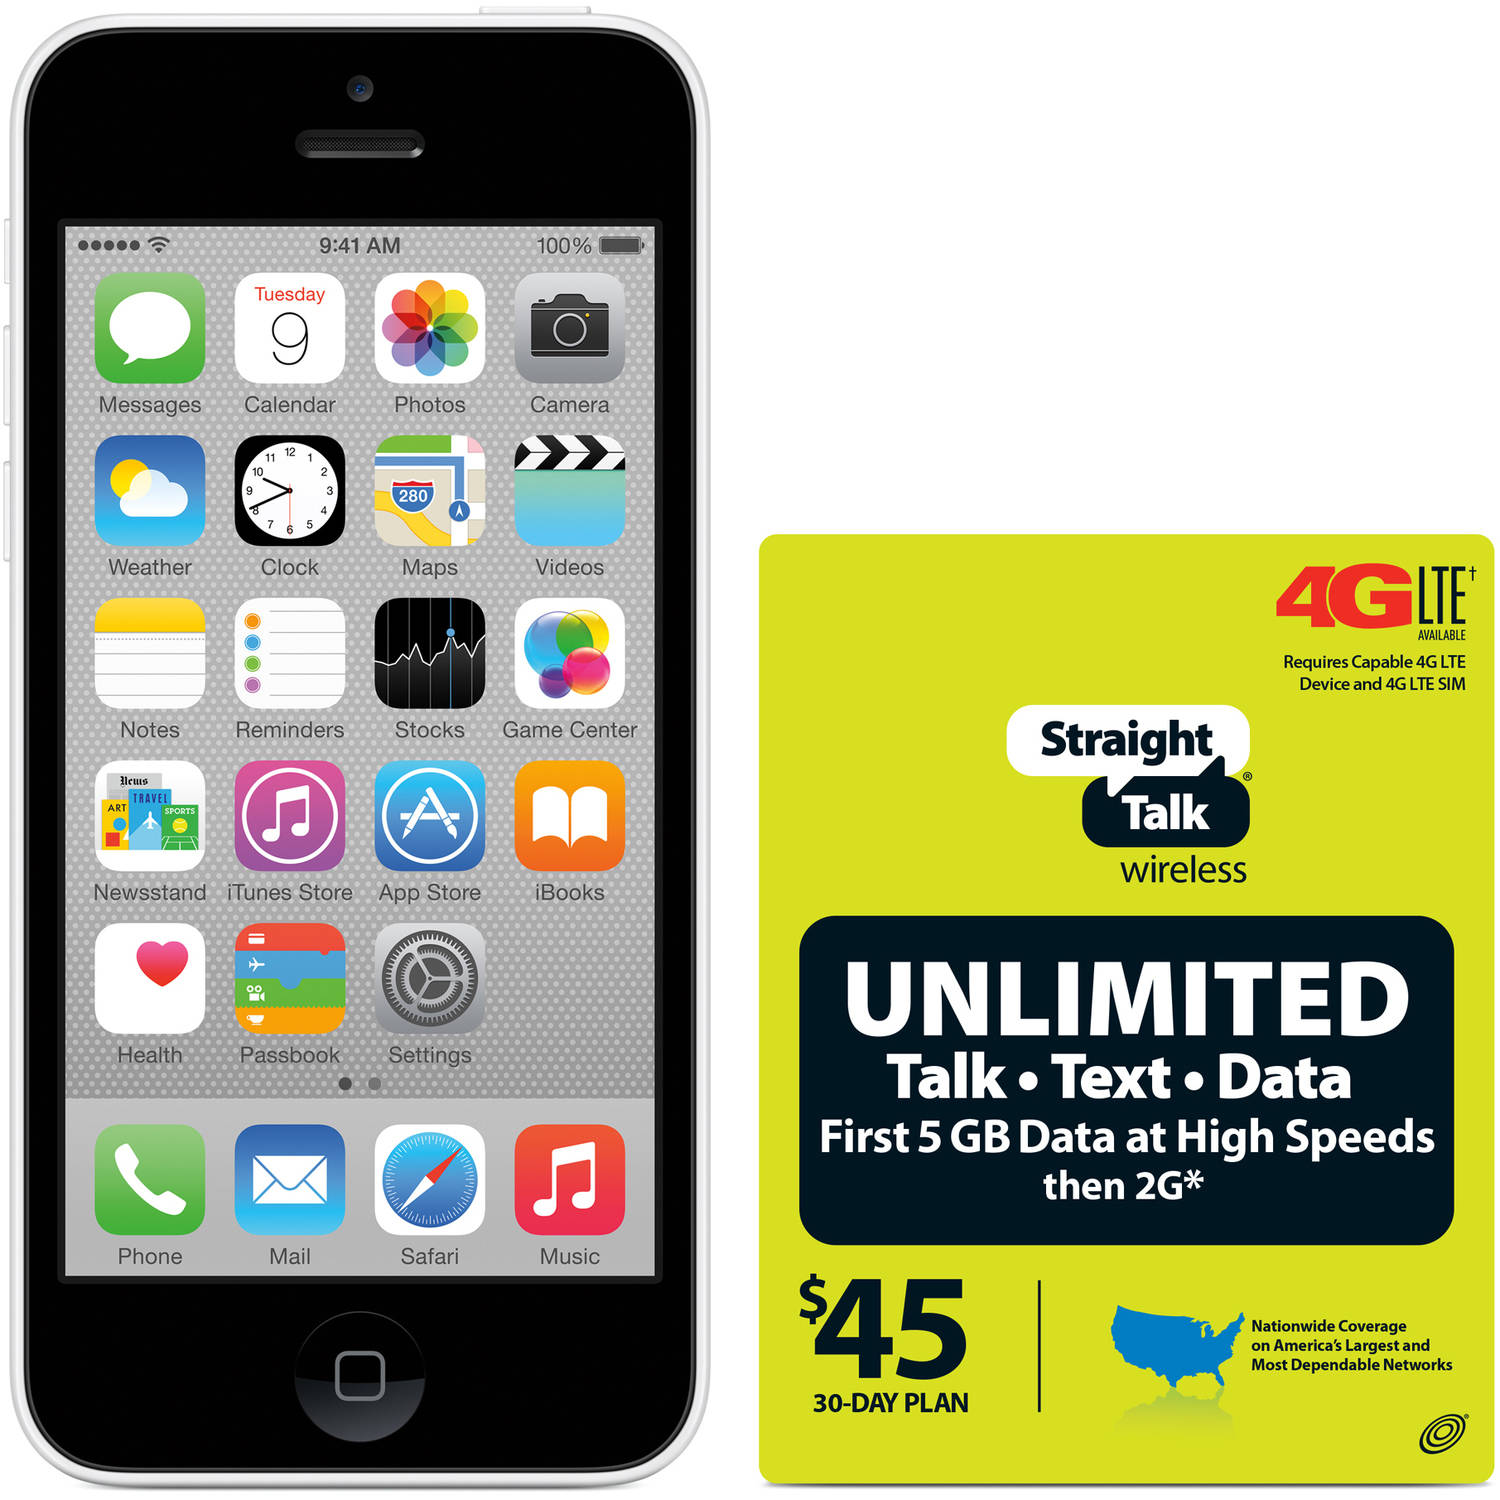 Straight Talk Apple iPhone 5 16GB White Refurbished Prepaid Smartphone w/ Bonus $45 Unlimited Plan